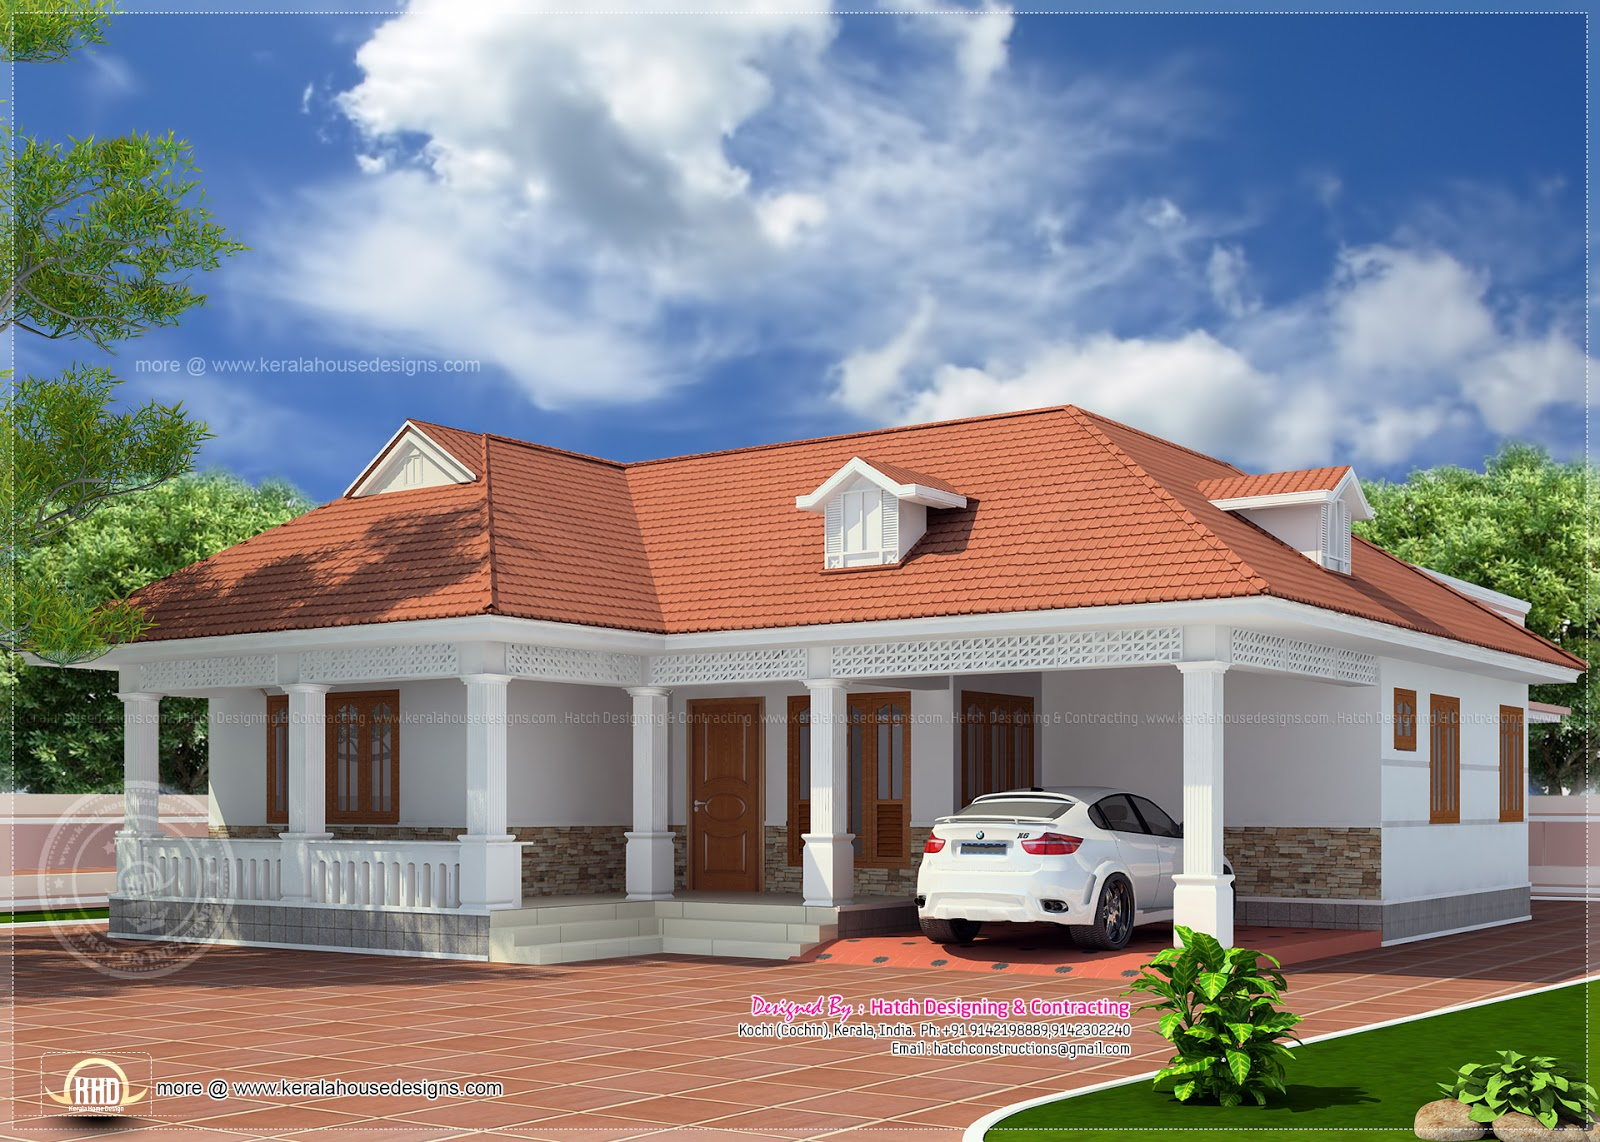 1850 kerala style home elevation kerala home for Home designs for kerala